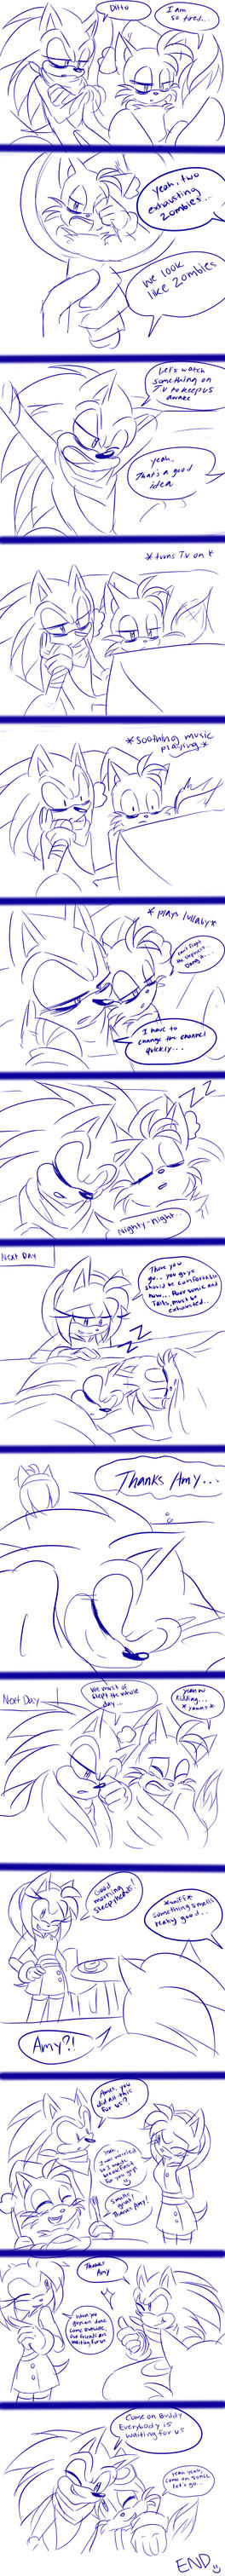 Two Exhausted Zombies comic by RulErofsonic